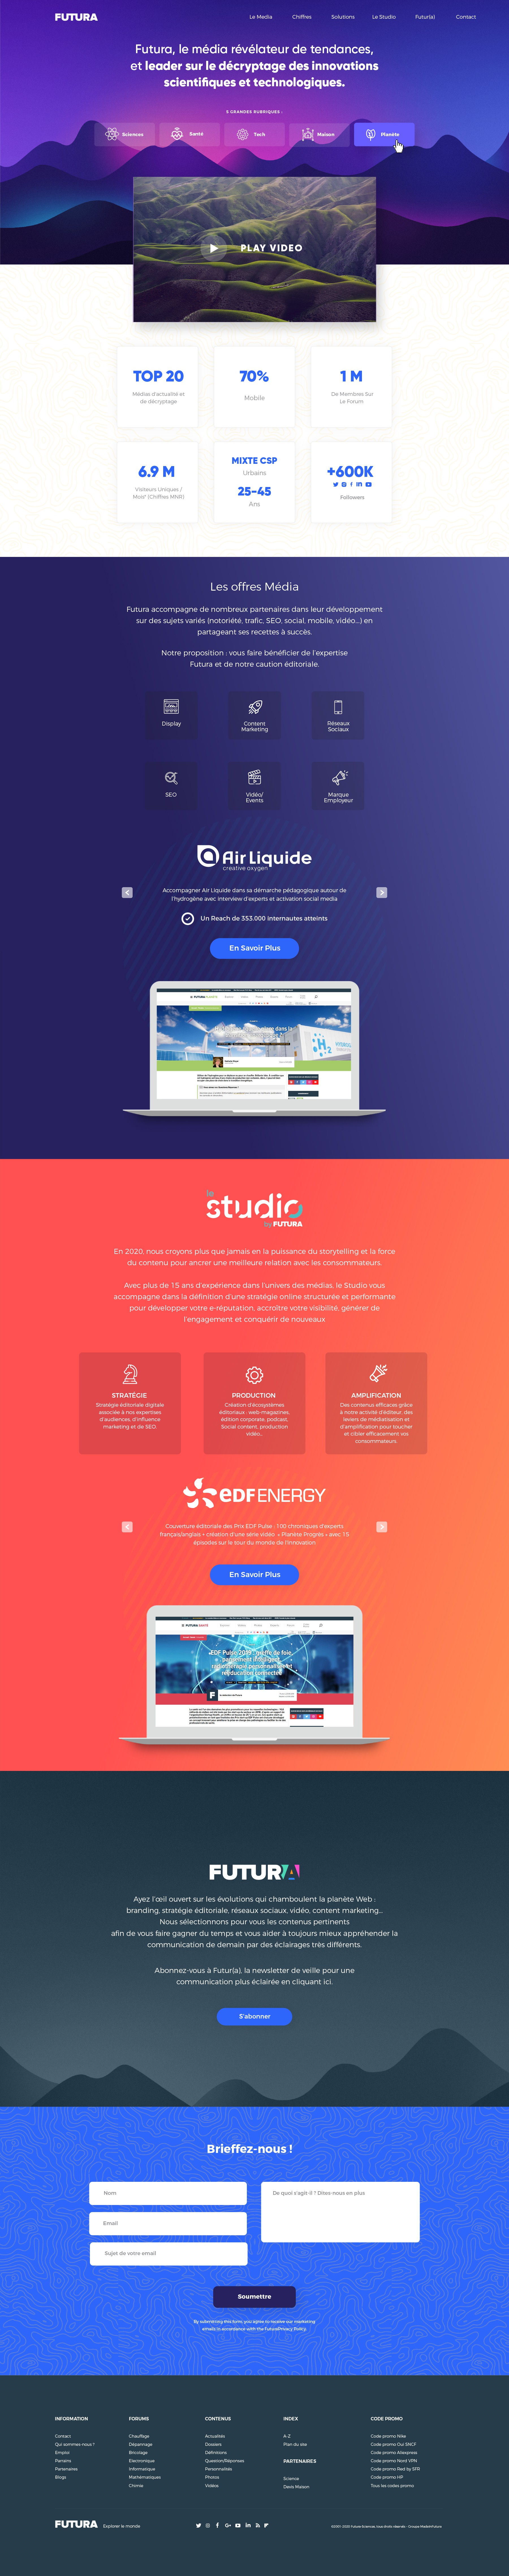 Innovative landing page for a leading science website!